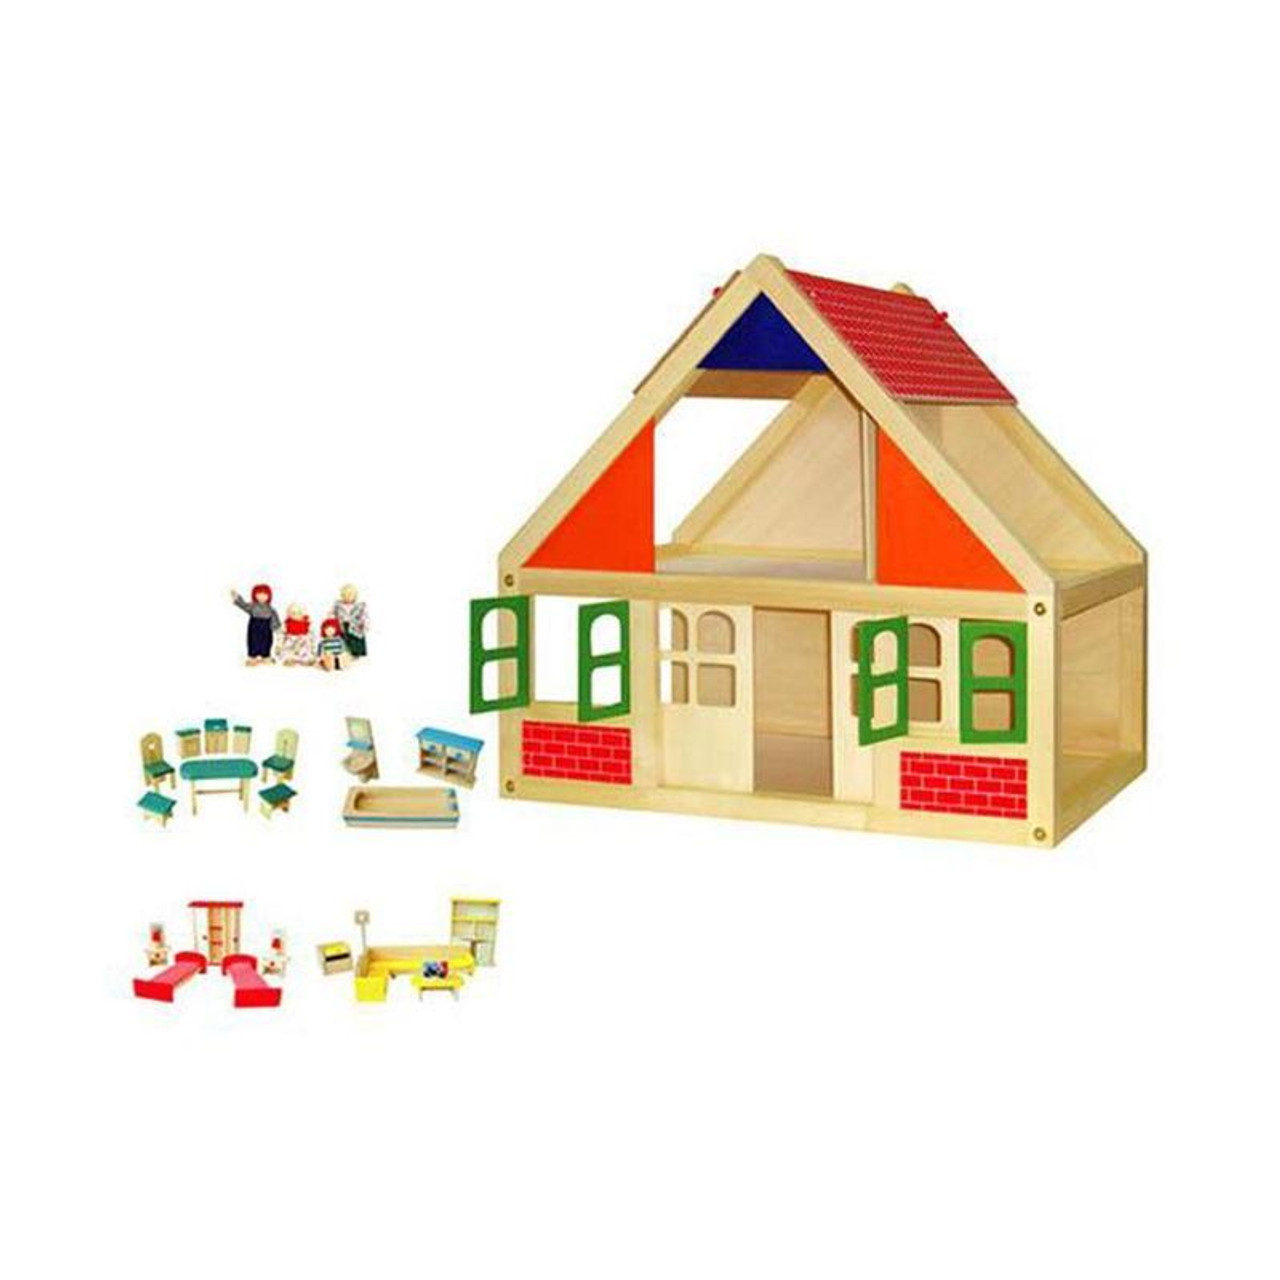 Viga Wooden Dolls House and Accessories at Baby Barn Discounts A charming classic dollhouse made of high quality wood, this little dolls house will be a treasure for years to come.